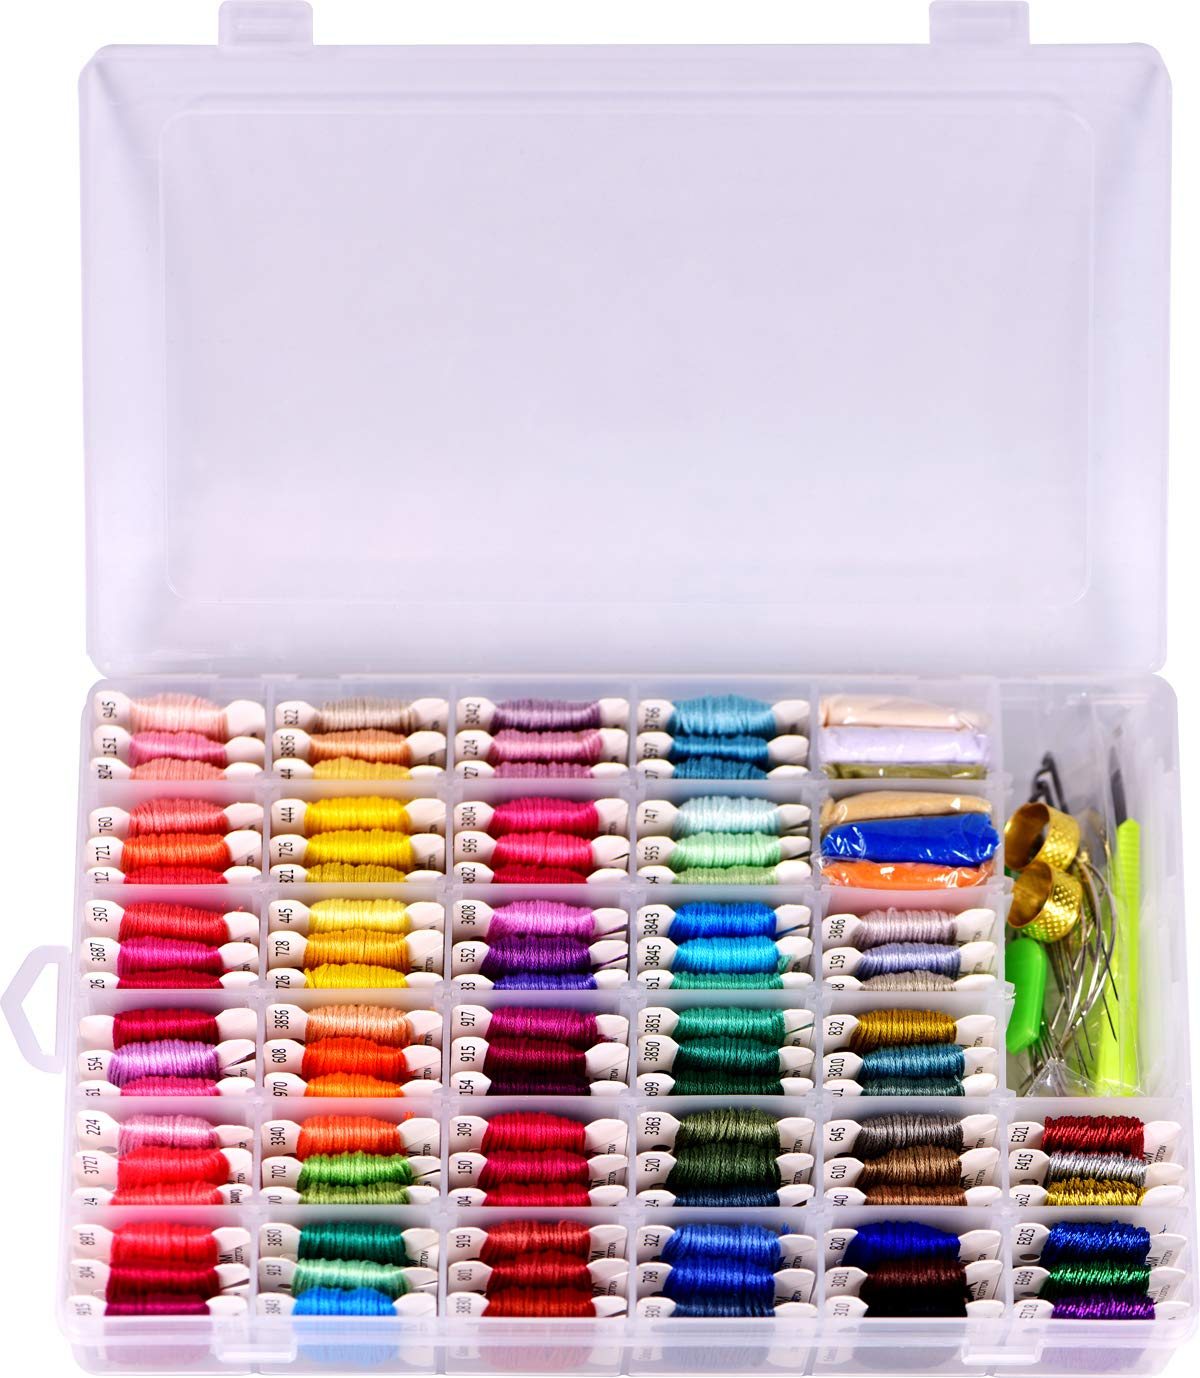 Embroidery Floss with Organizer Storage Box 125pcs String Kits 100% Long-Staple Cotton Bracelets String, Metallic Embroidery Thread, Colorful Wool Roving and Floss Bobbins with Cross Stitch Tool Kits cq